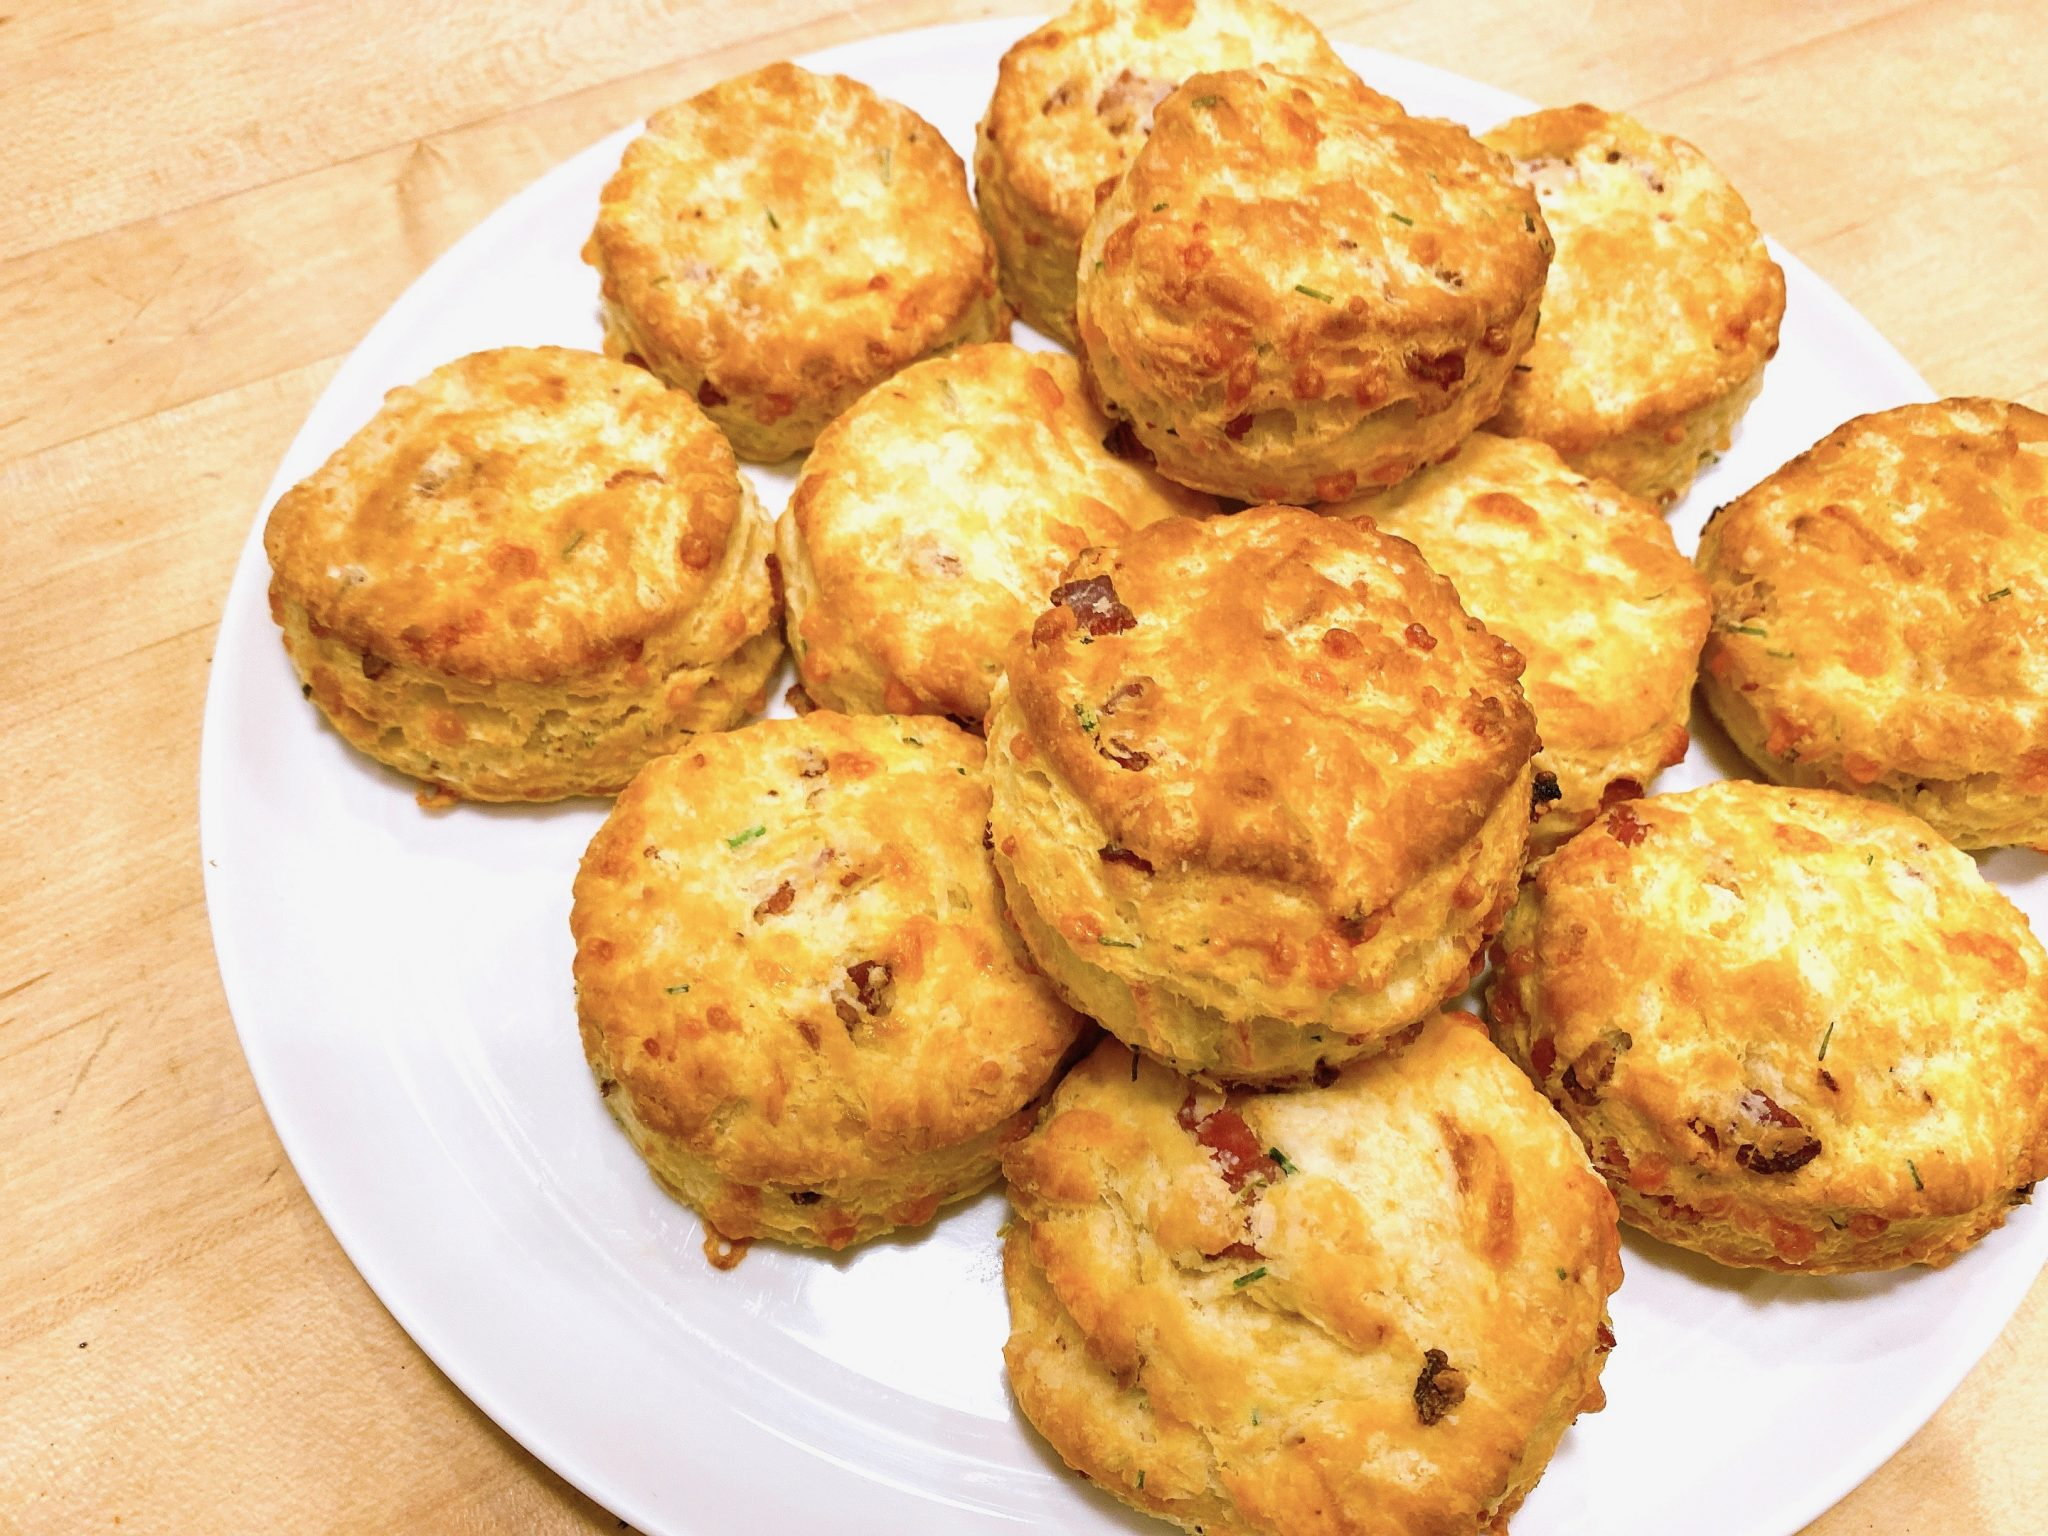 The Best Most Flakylicious Bacon Cheddar Biscuits Recipe